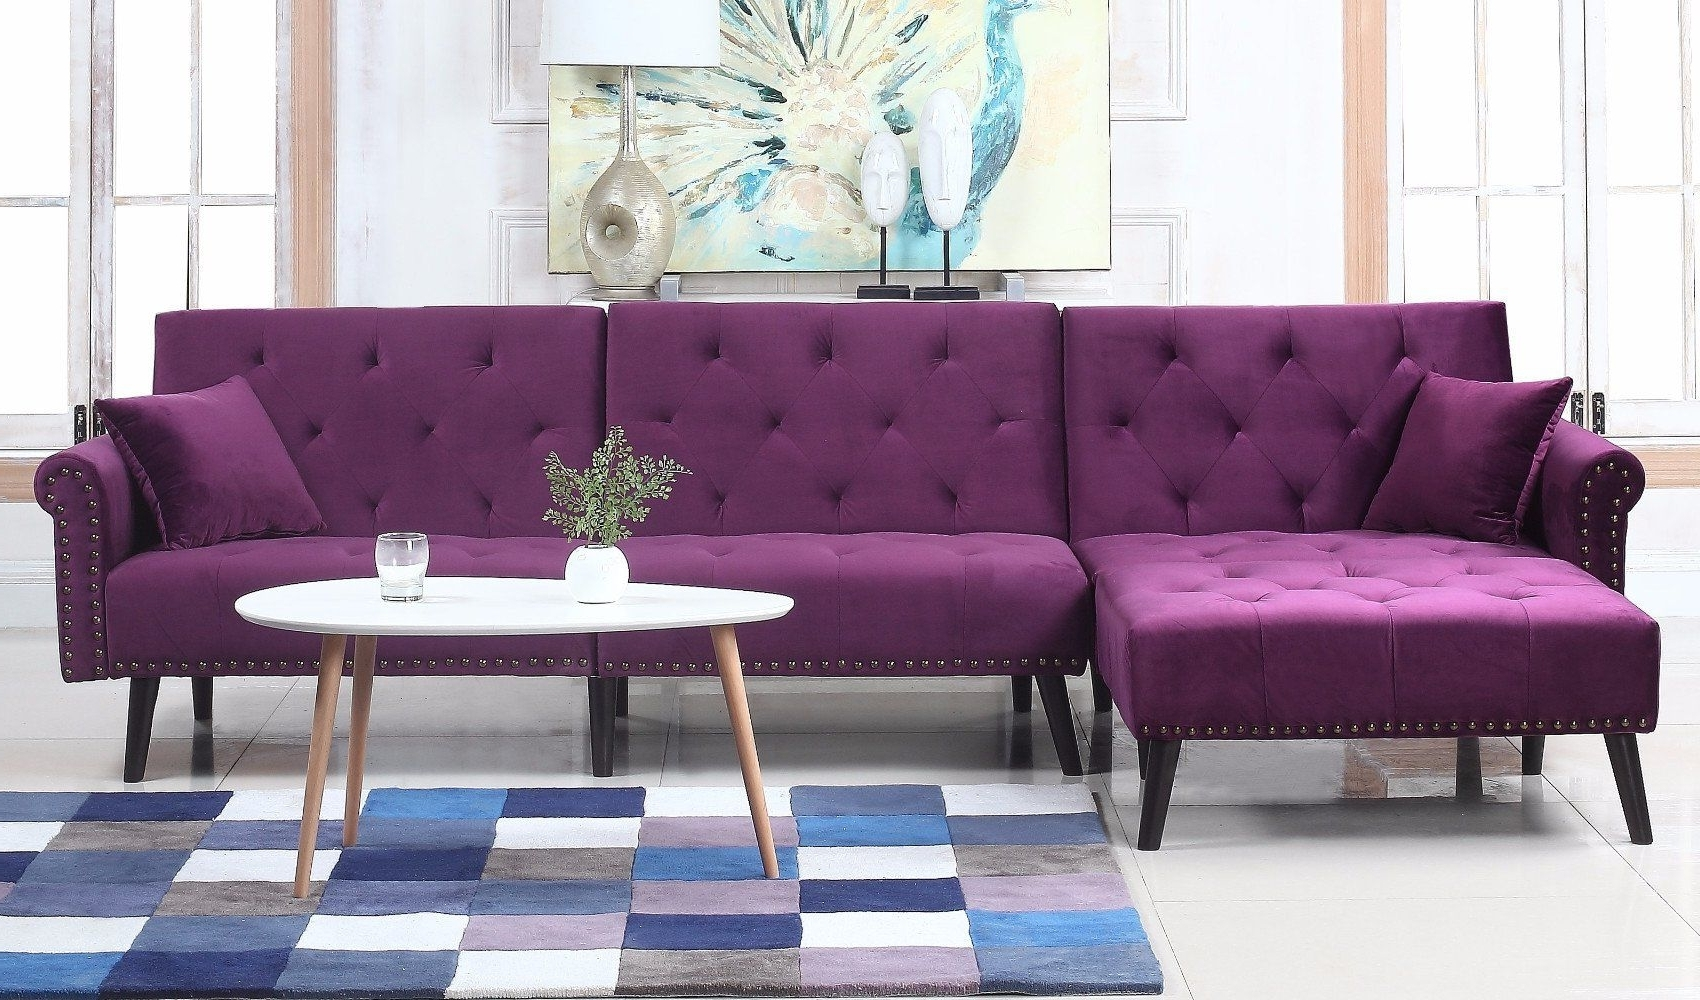 Velvet Sectional Sofas With Chaise with Widely used Victoria Velvet Sectional Futon With Chaise In Purple